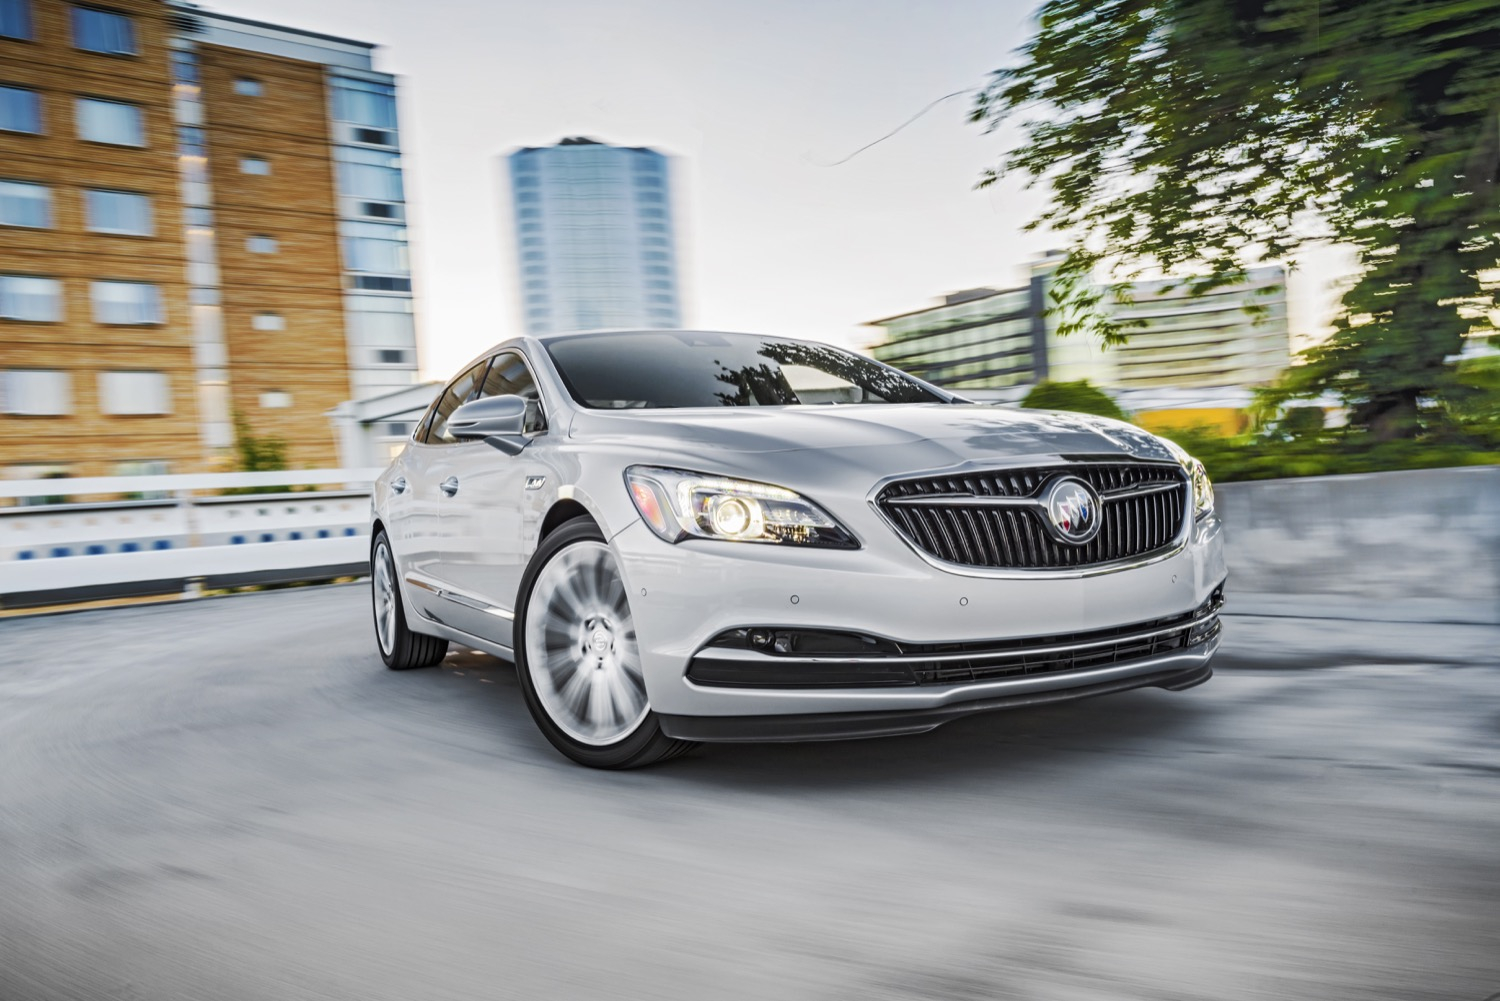 Buick Lacrosse Discount Totals $9,000 February 2020 | Gm New 2021 Buick Lacrosse Lease, Reviews, Msrp